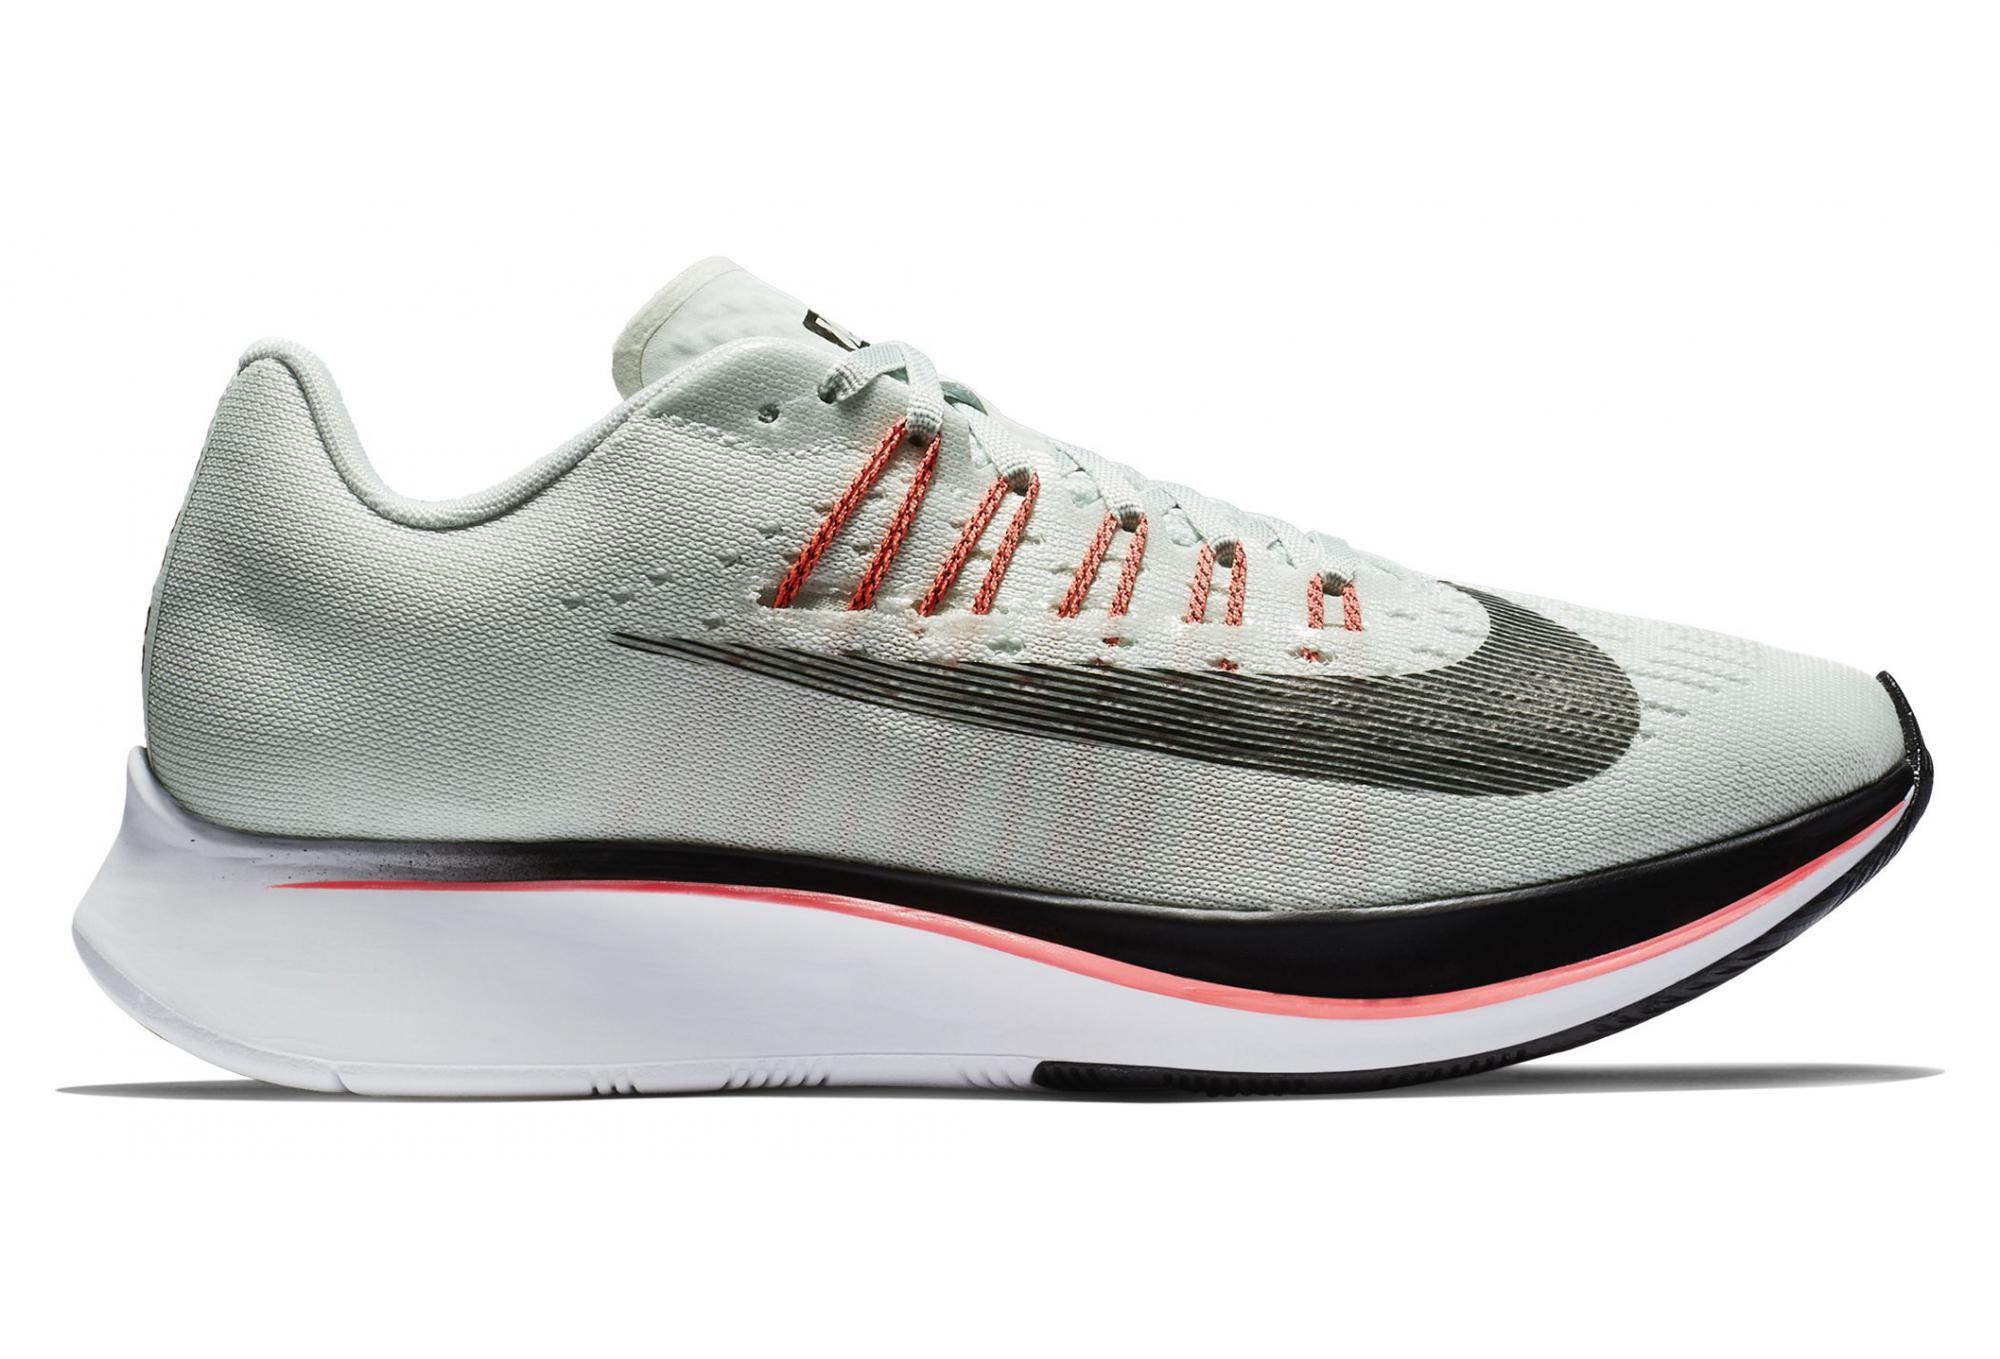 Telégrafo Justicia Orden alfabetico  Nike Shoes Zoom Fly Green Grey Pink Women | Alltricks.com